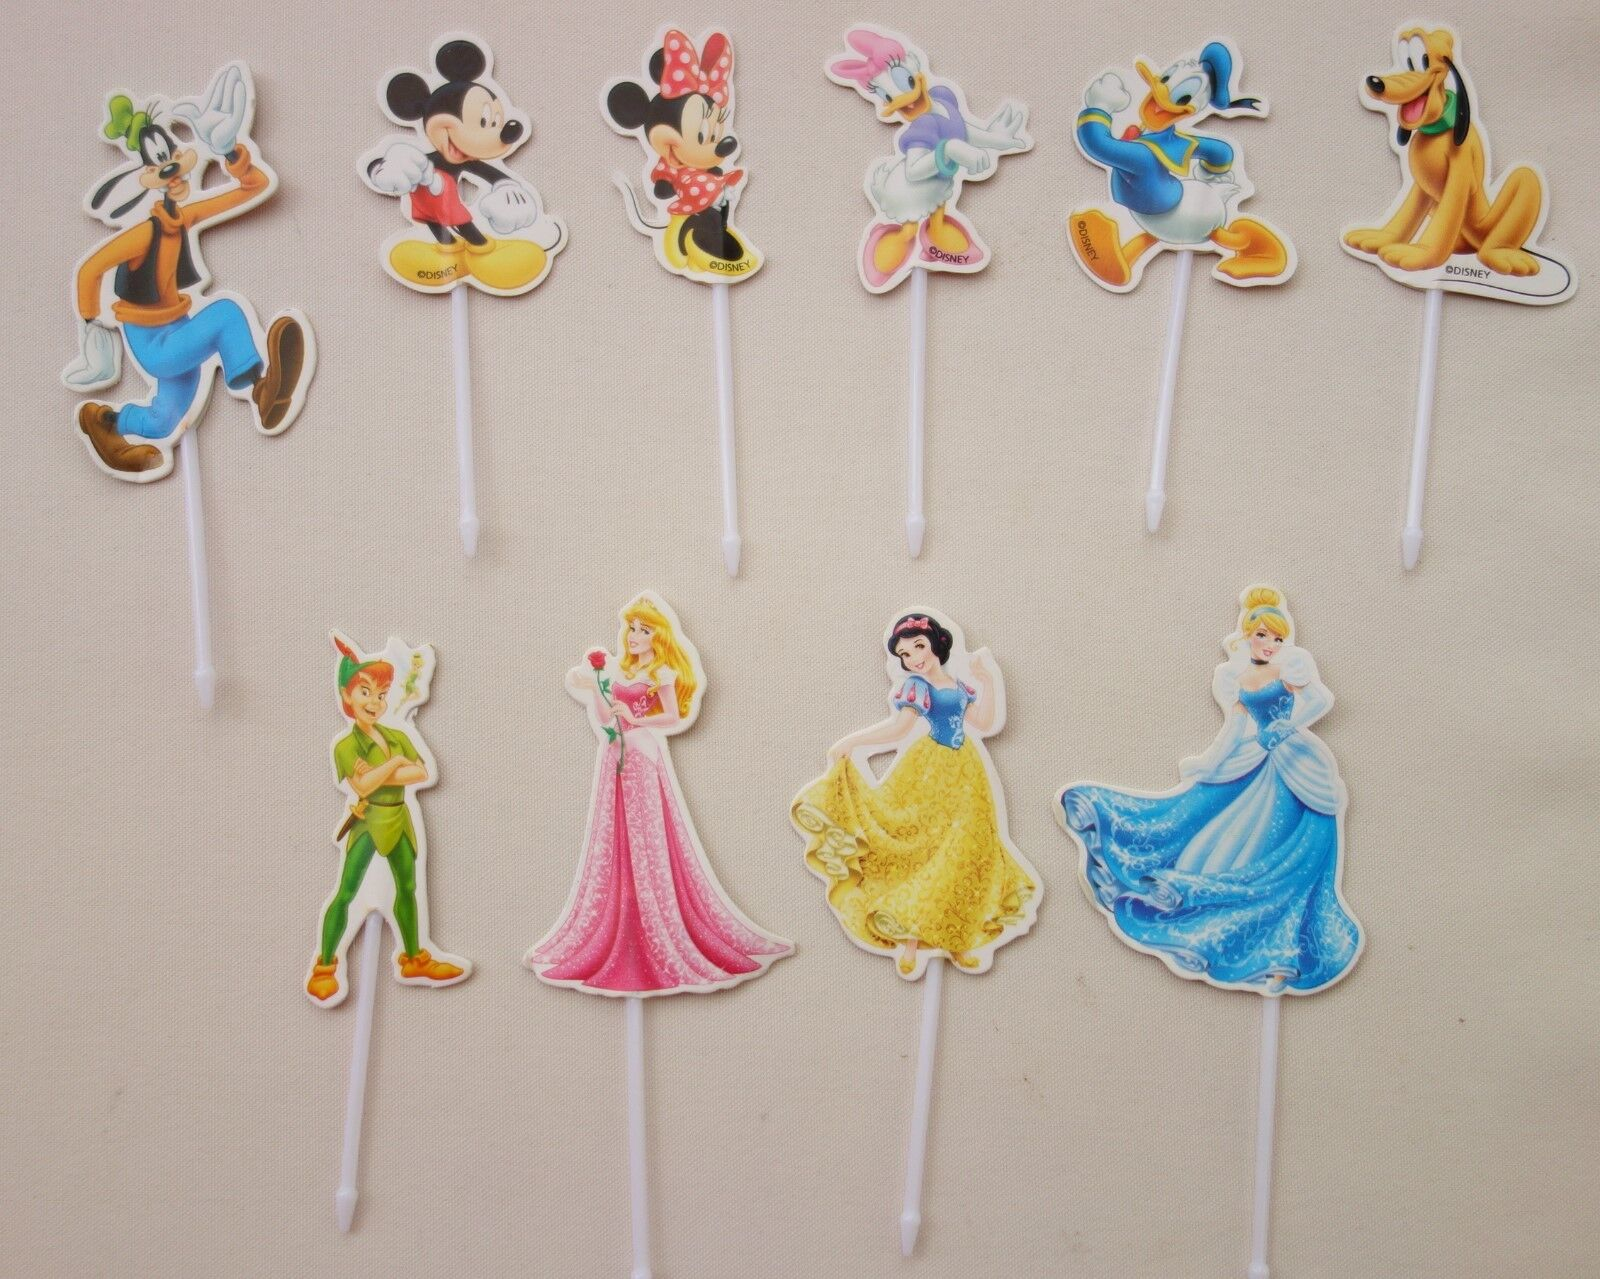 10 x Deko Zahnstocher Disney Party Dekostecker Sticker Kuchenstecker Torten